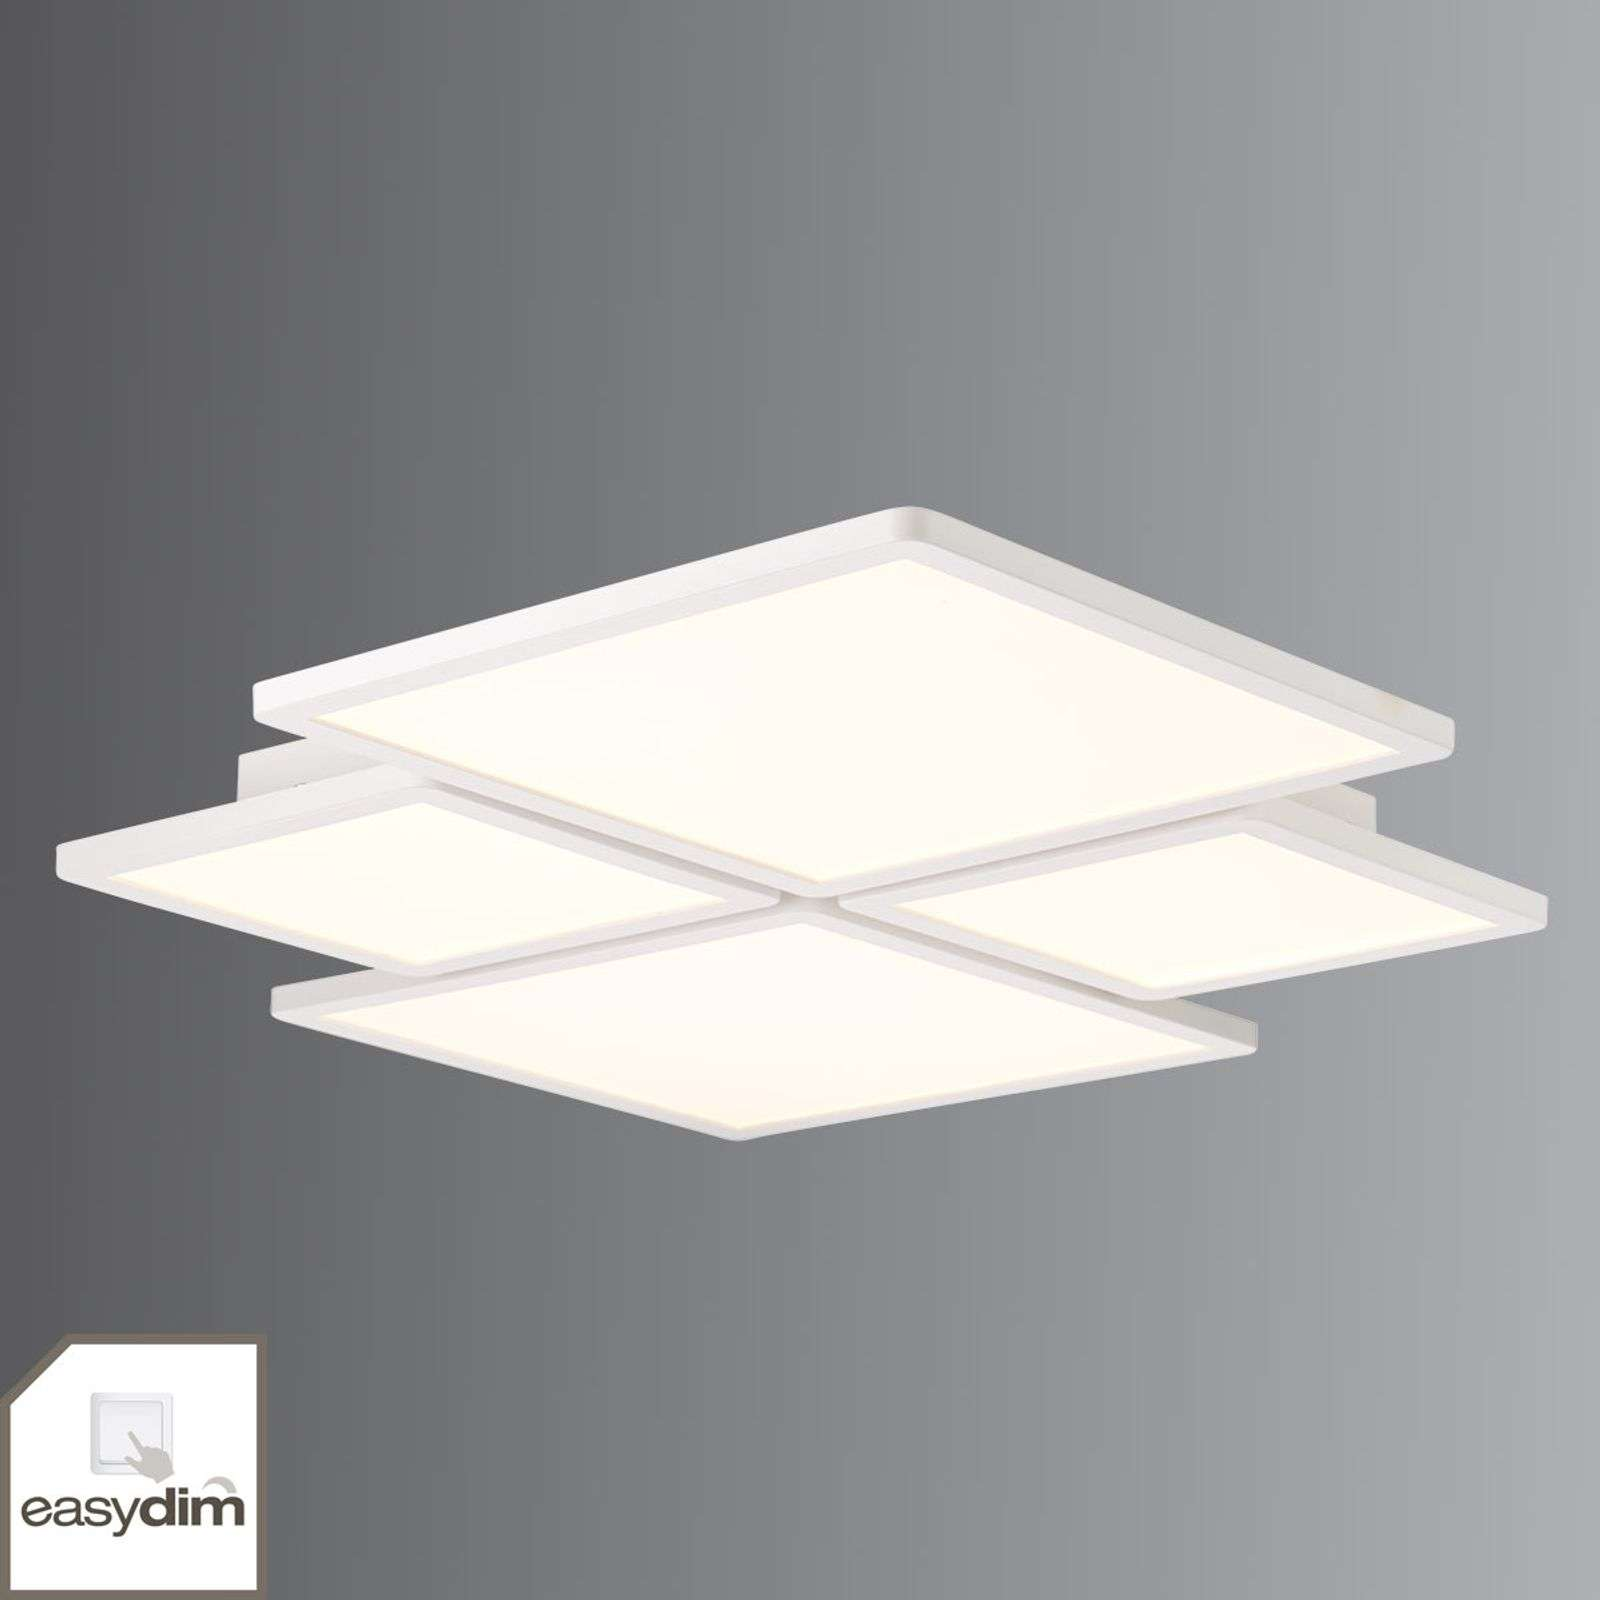 Plafonnier LED Easydim à quatre lampes Scope